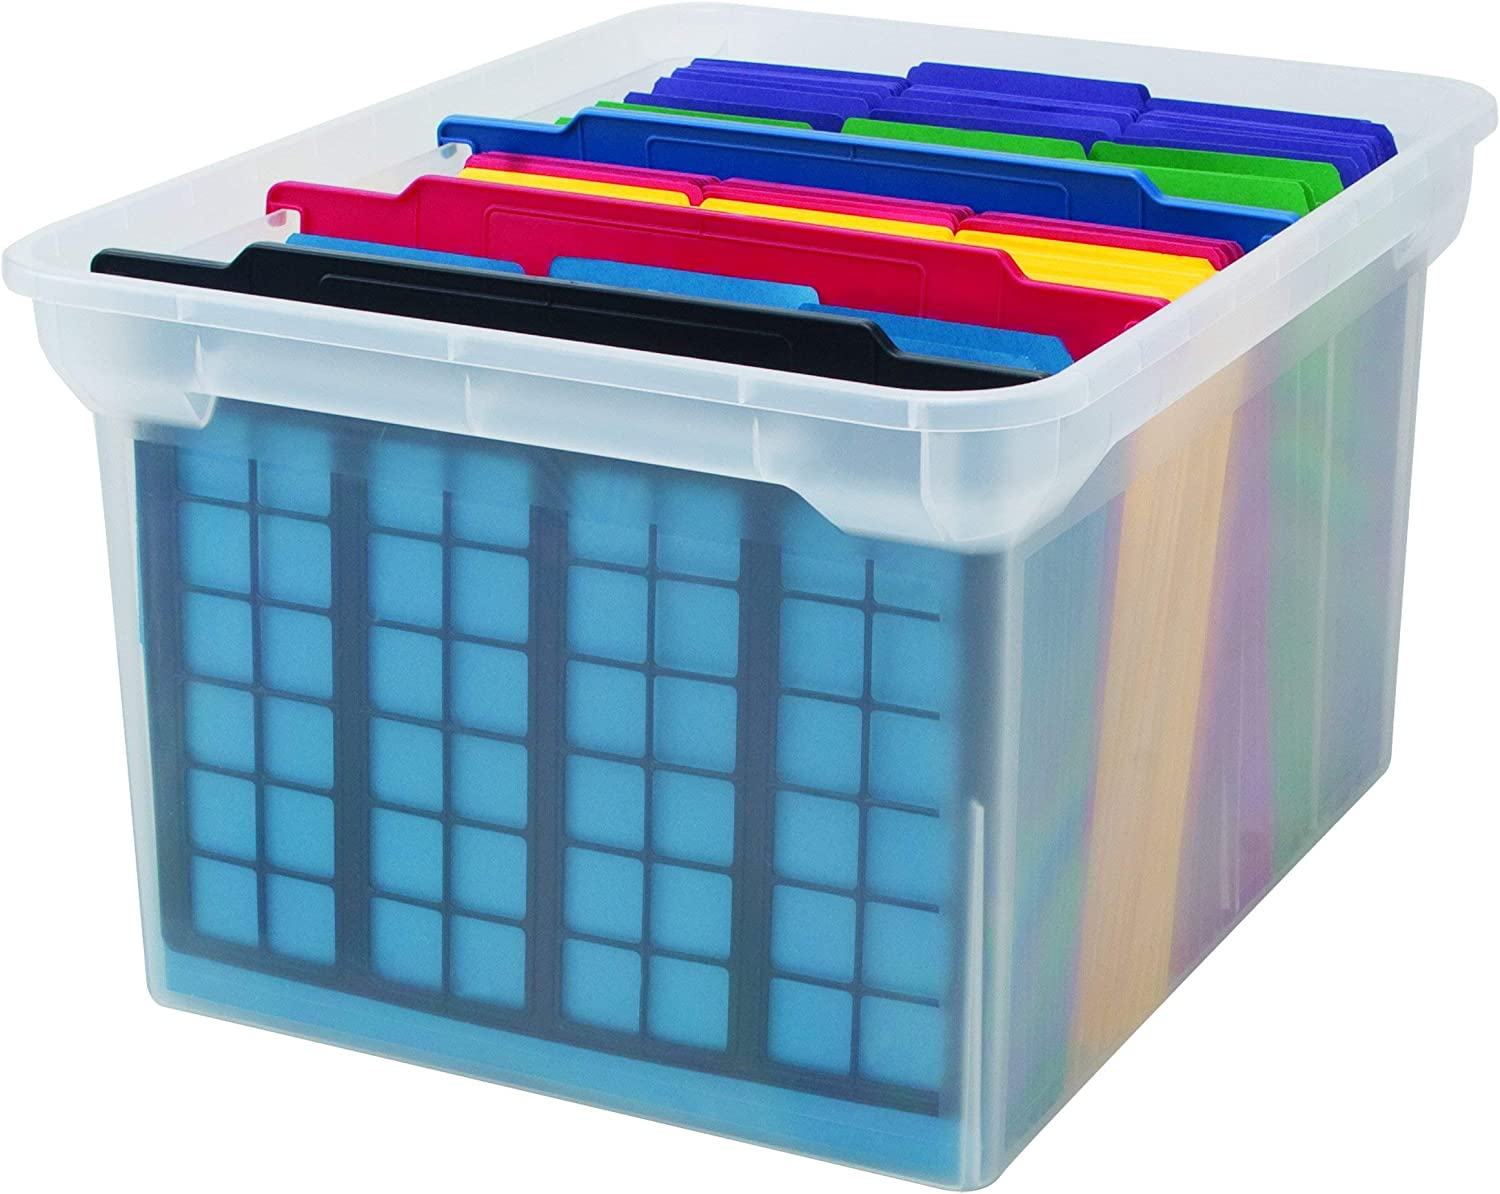 3-Count Advantus File and Folder Dividers and Black 50912 Renewed Blue Red